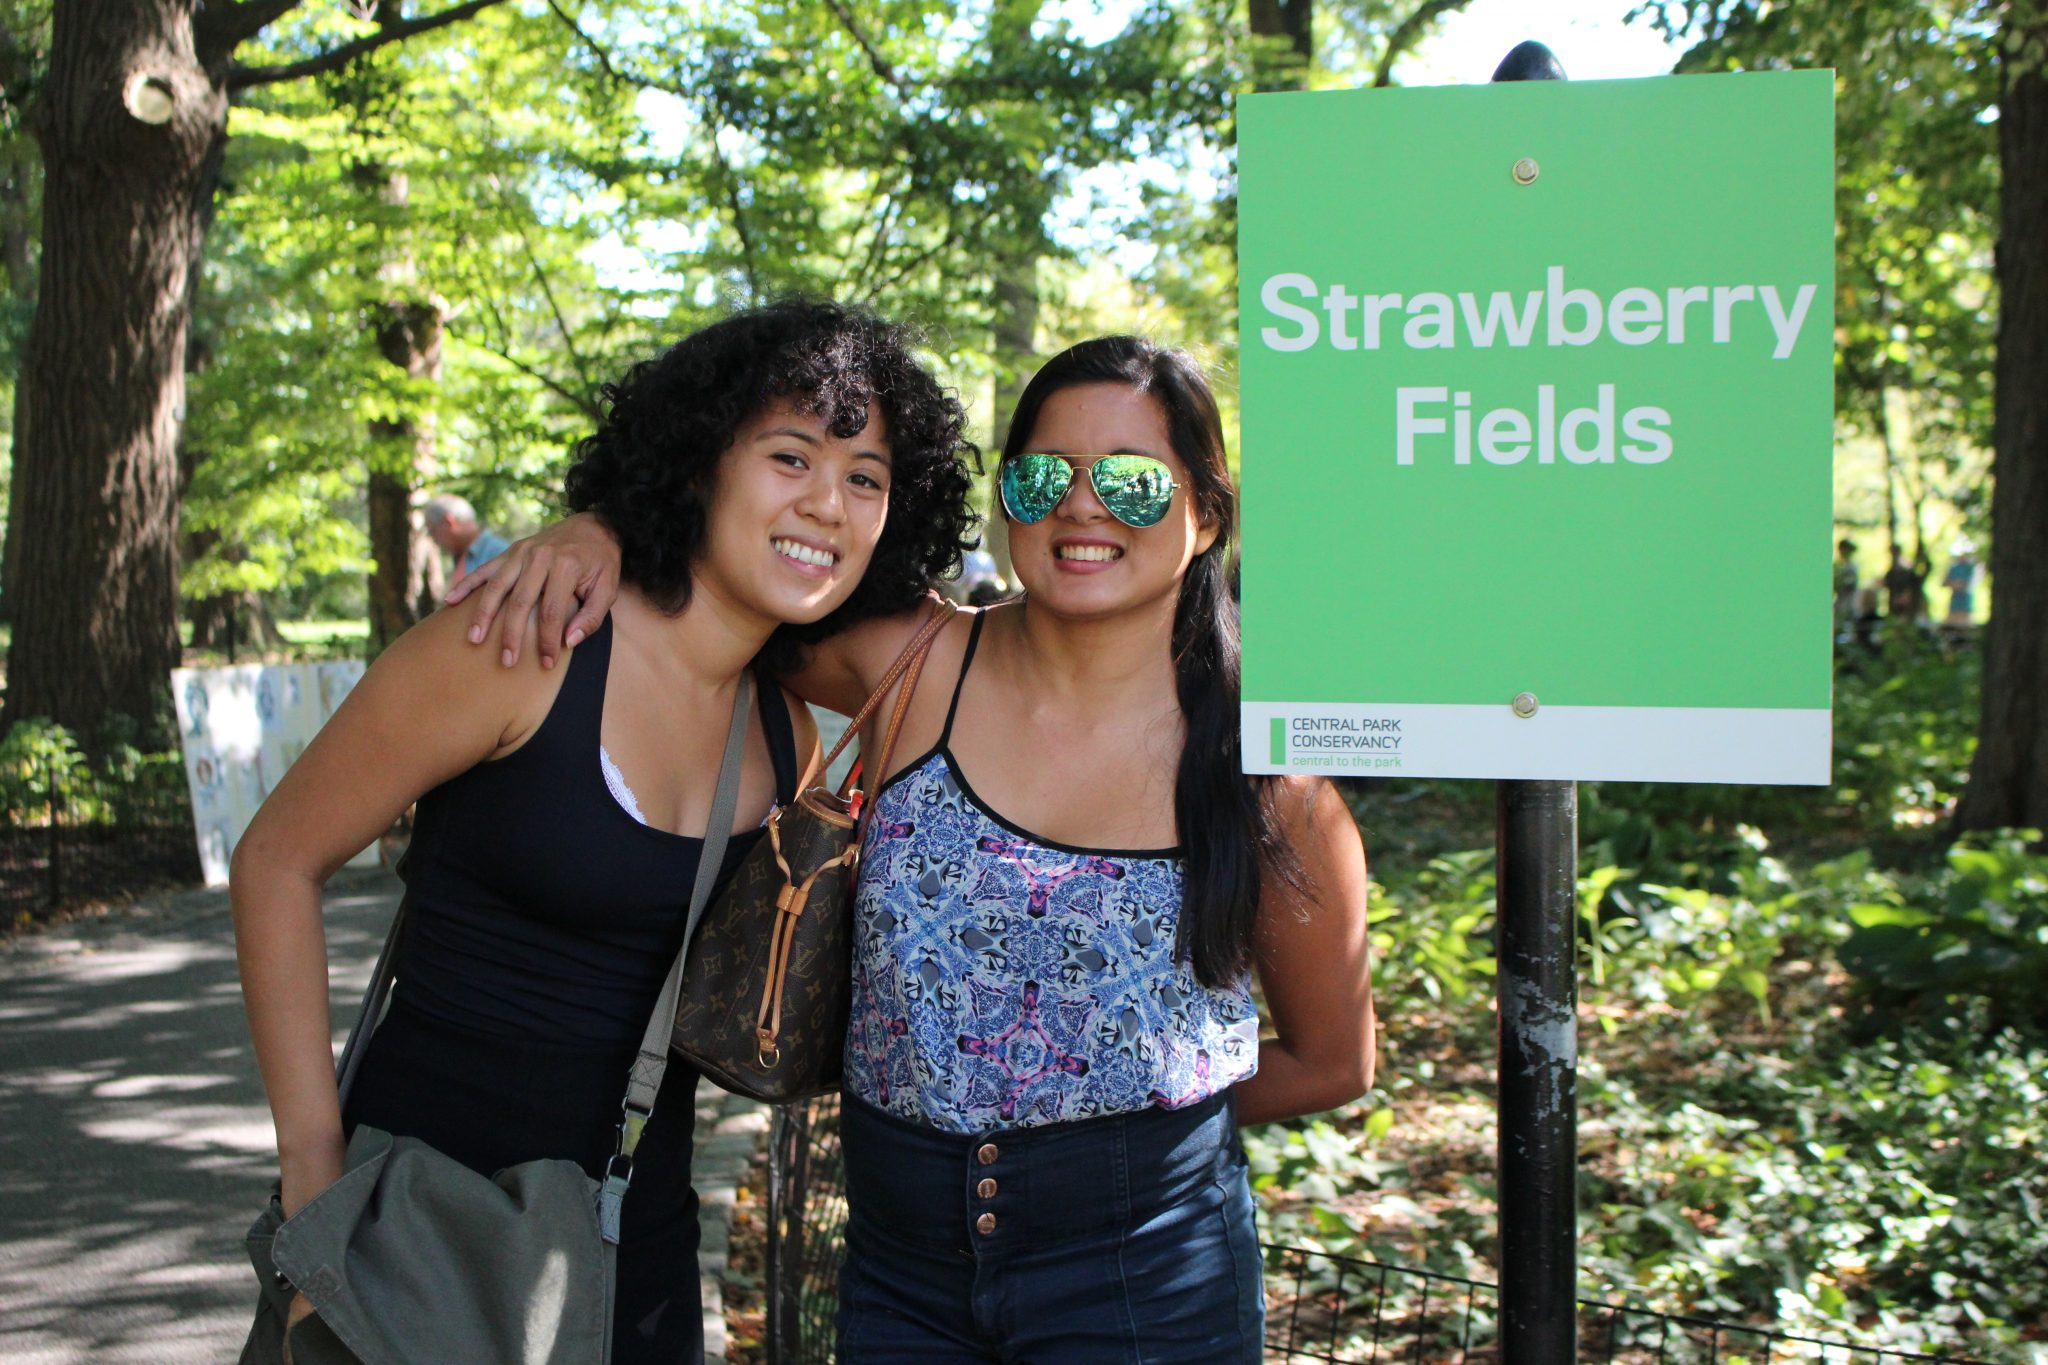 Strawberry Fields Central Park